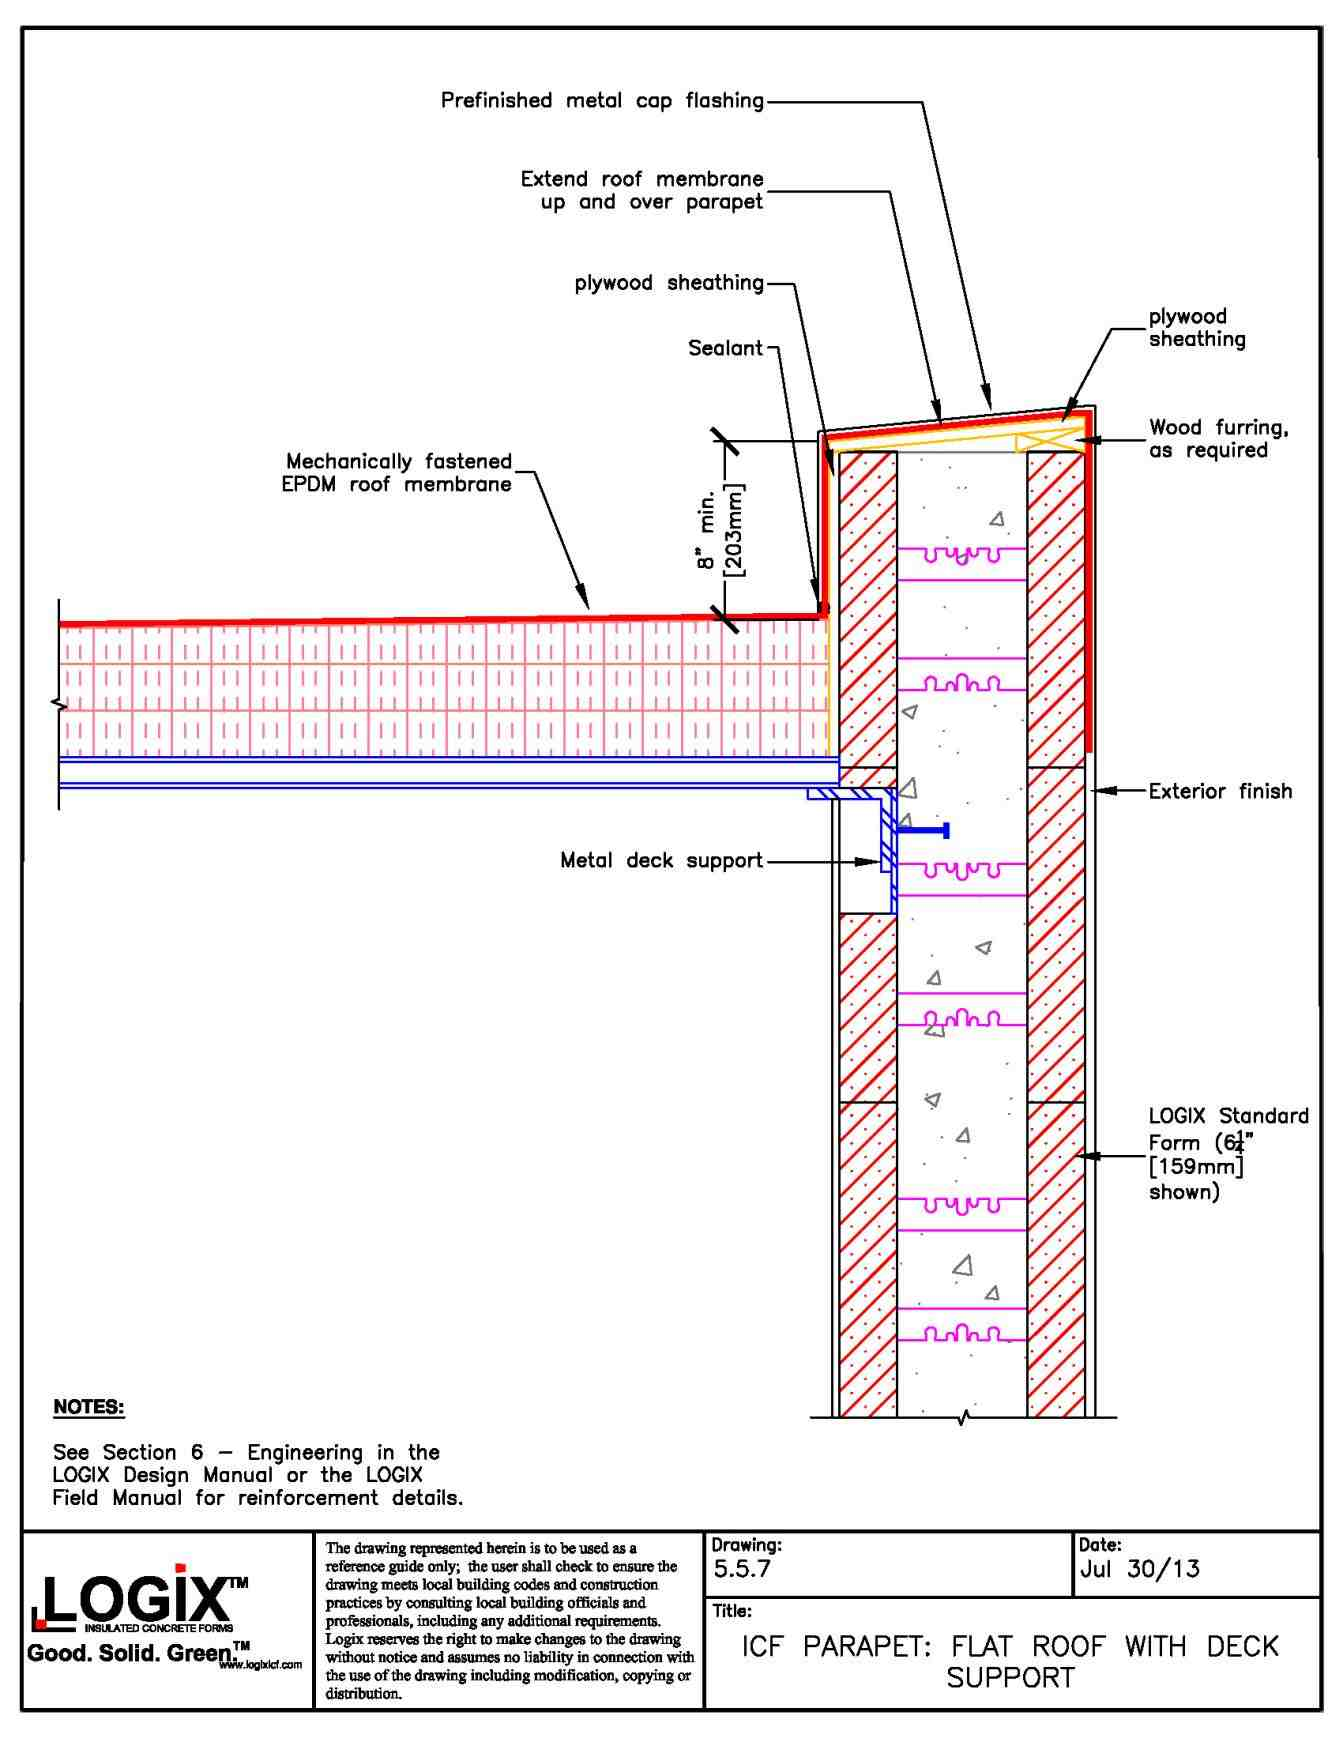 Roofing Drawing at GetDrawings com | Free for personal use Roofing